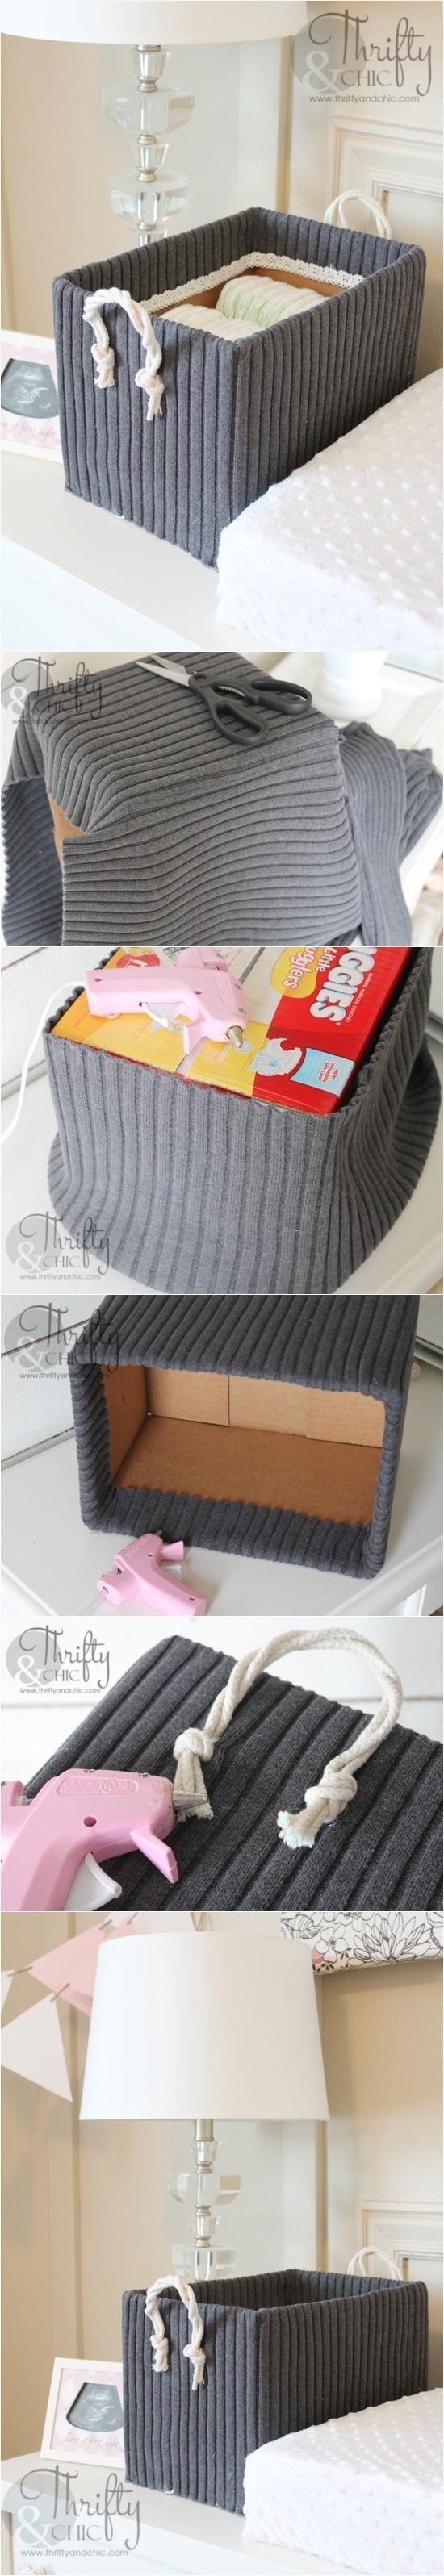 Cute Storage Boxes from Old Boxes and Sweaters | DIY Crafts Club